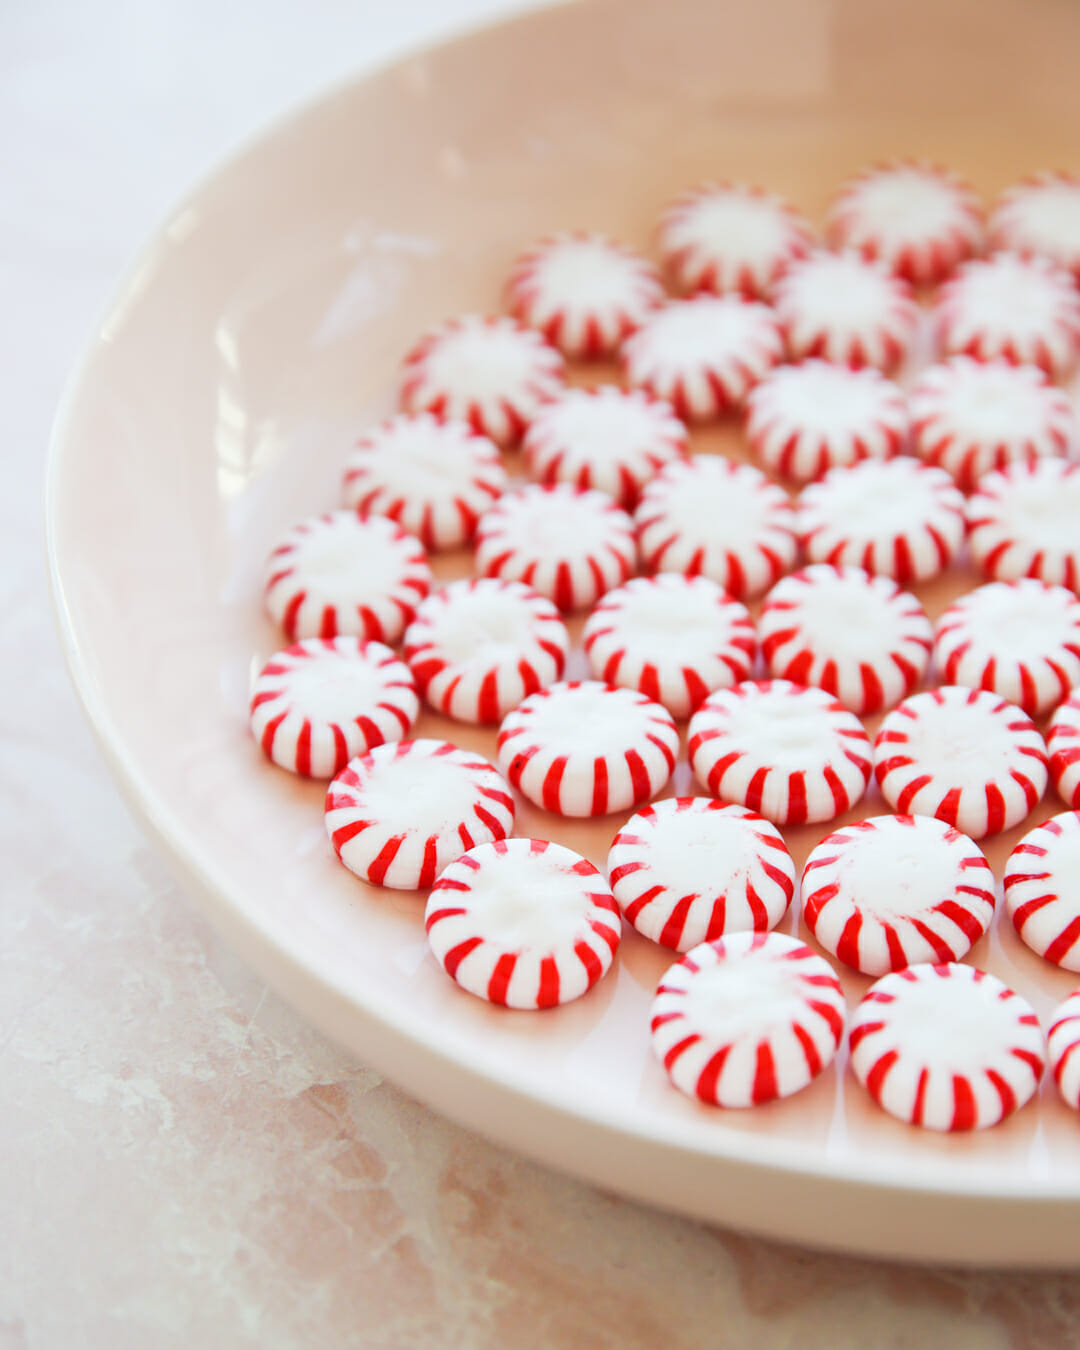 peppermint candies on plate